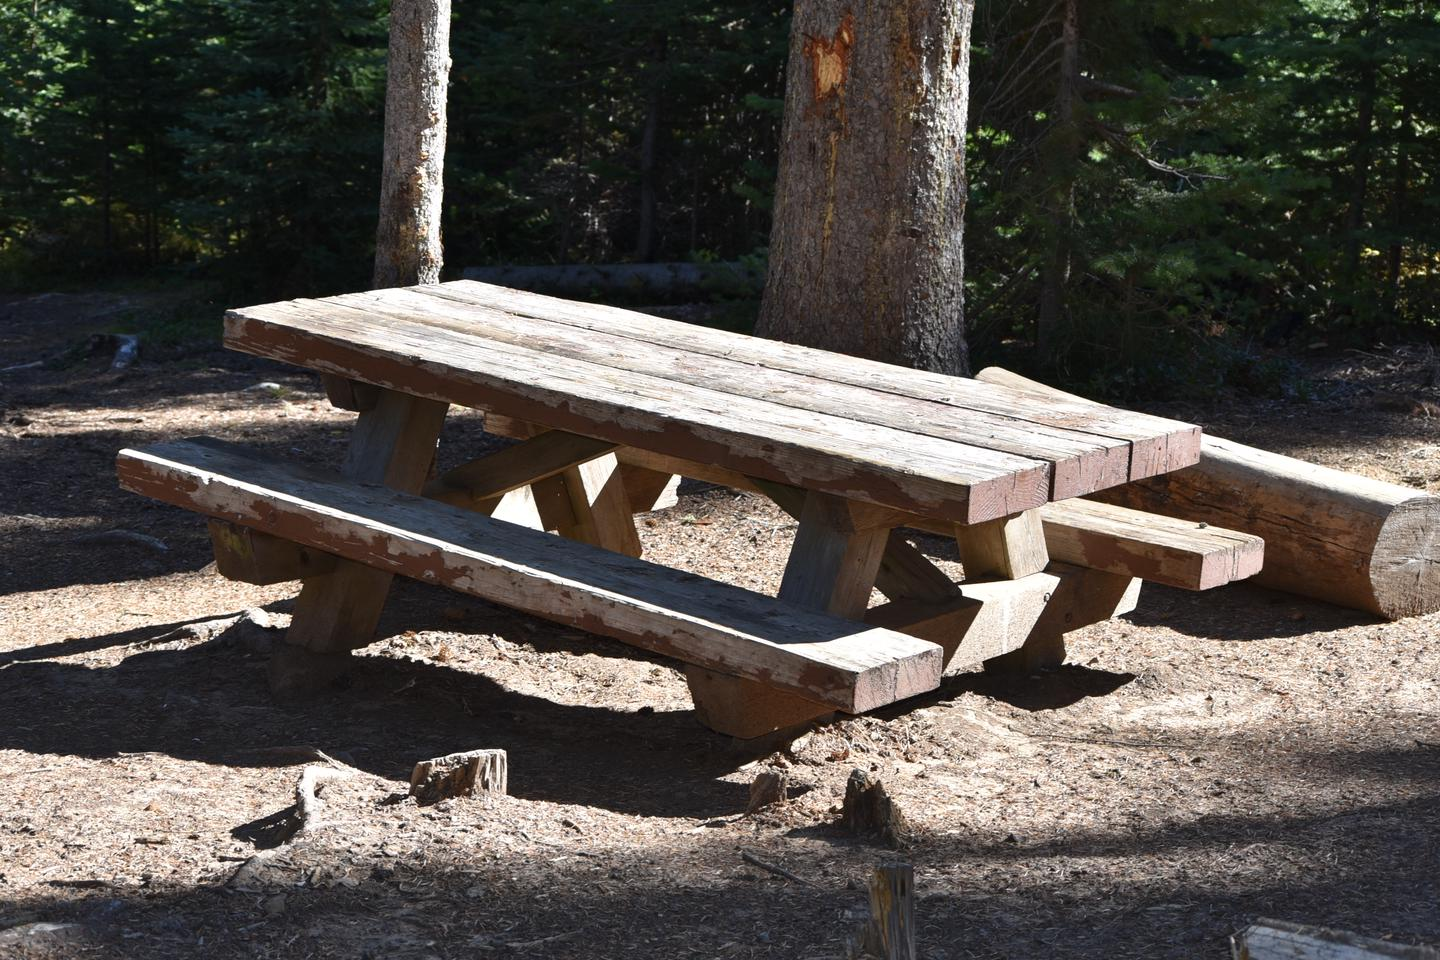 picnic table at campsiteJubilee Lake Campground site #19